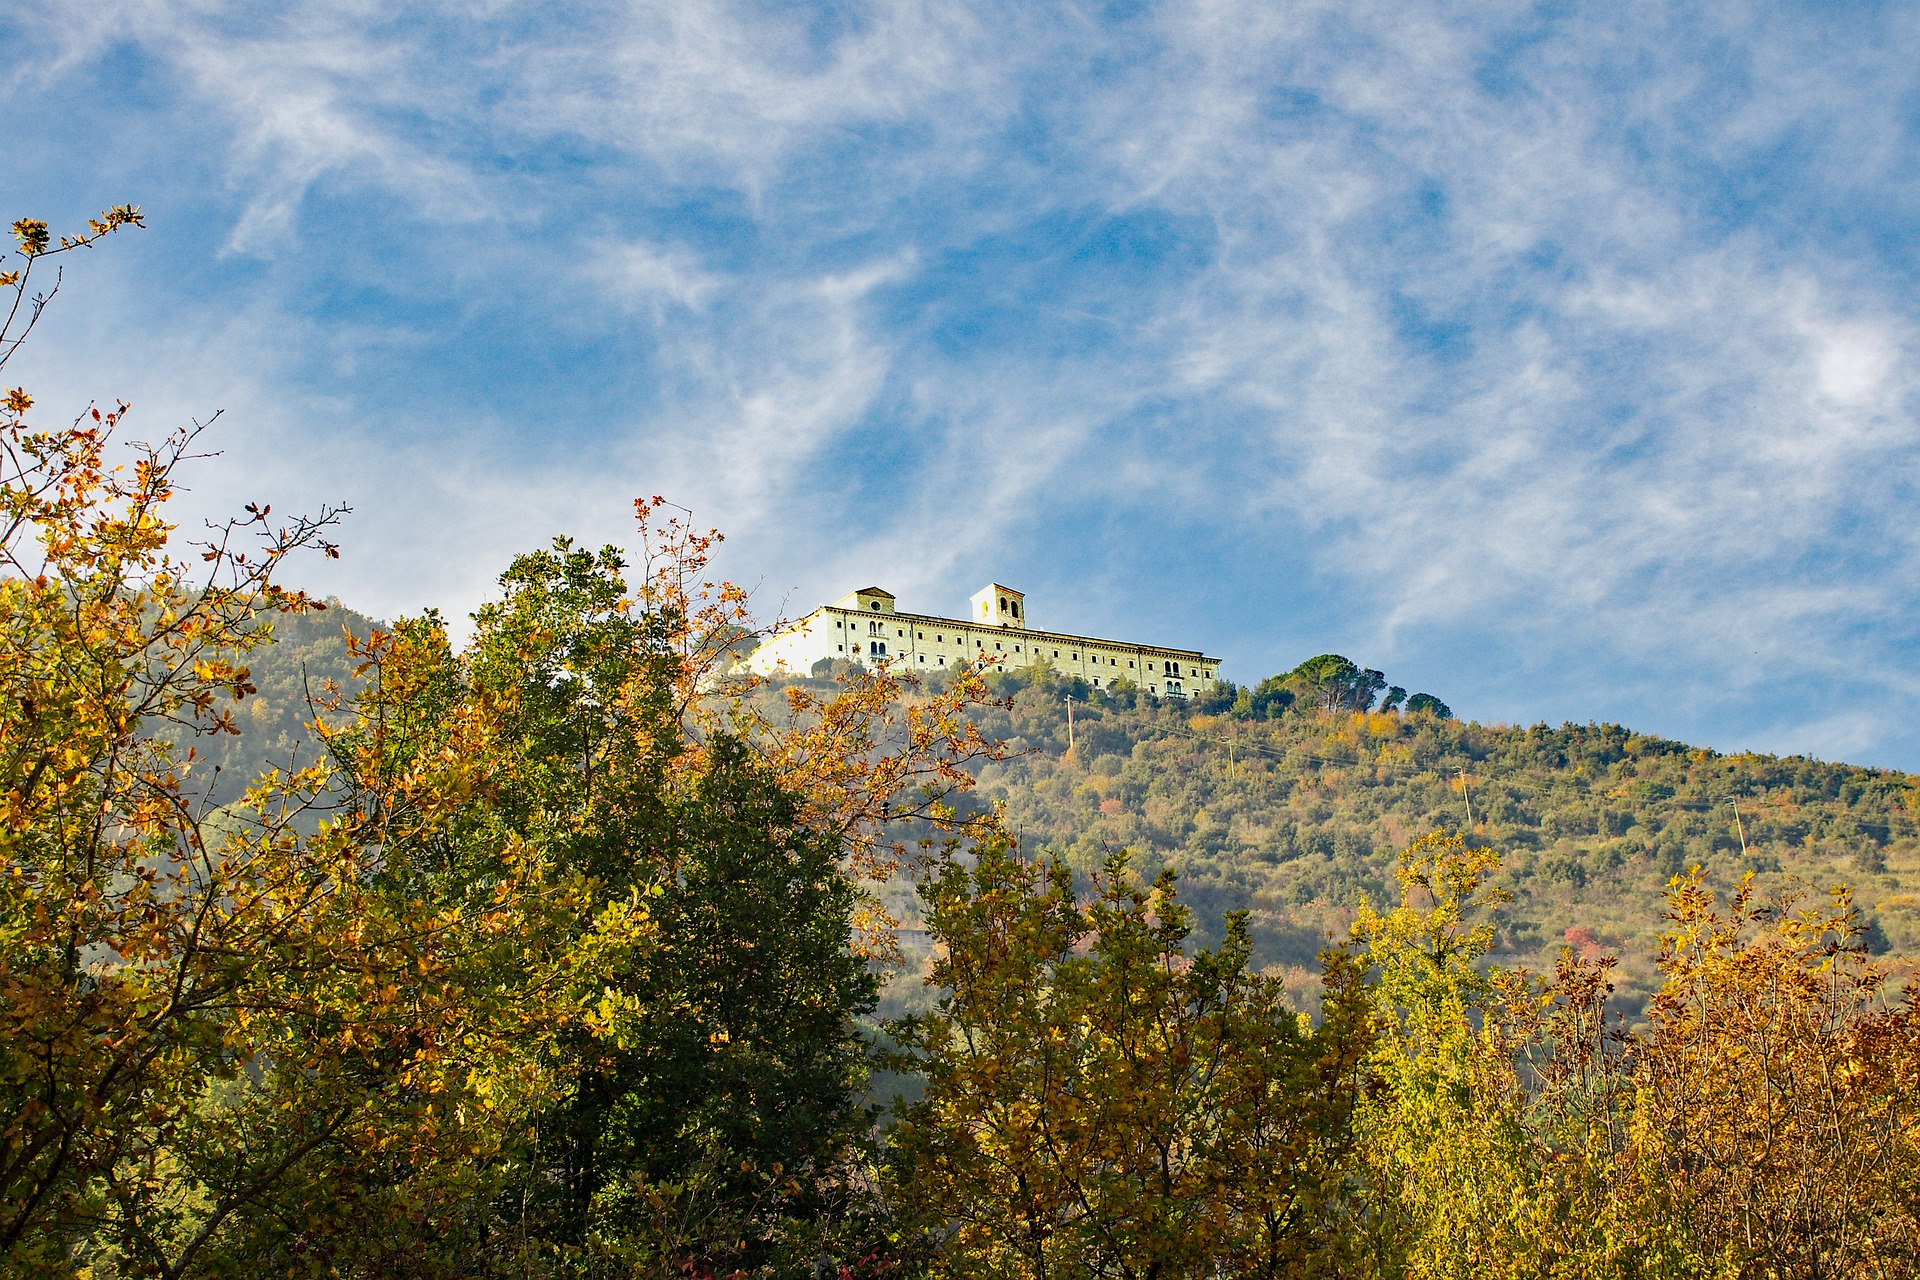 abbey-montecassino-1688655_1920 (1)